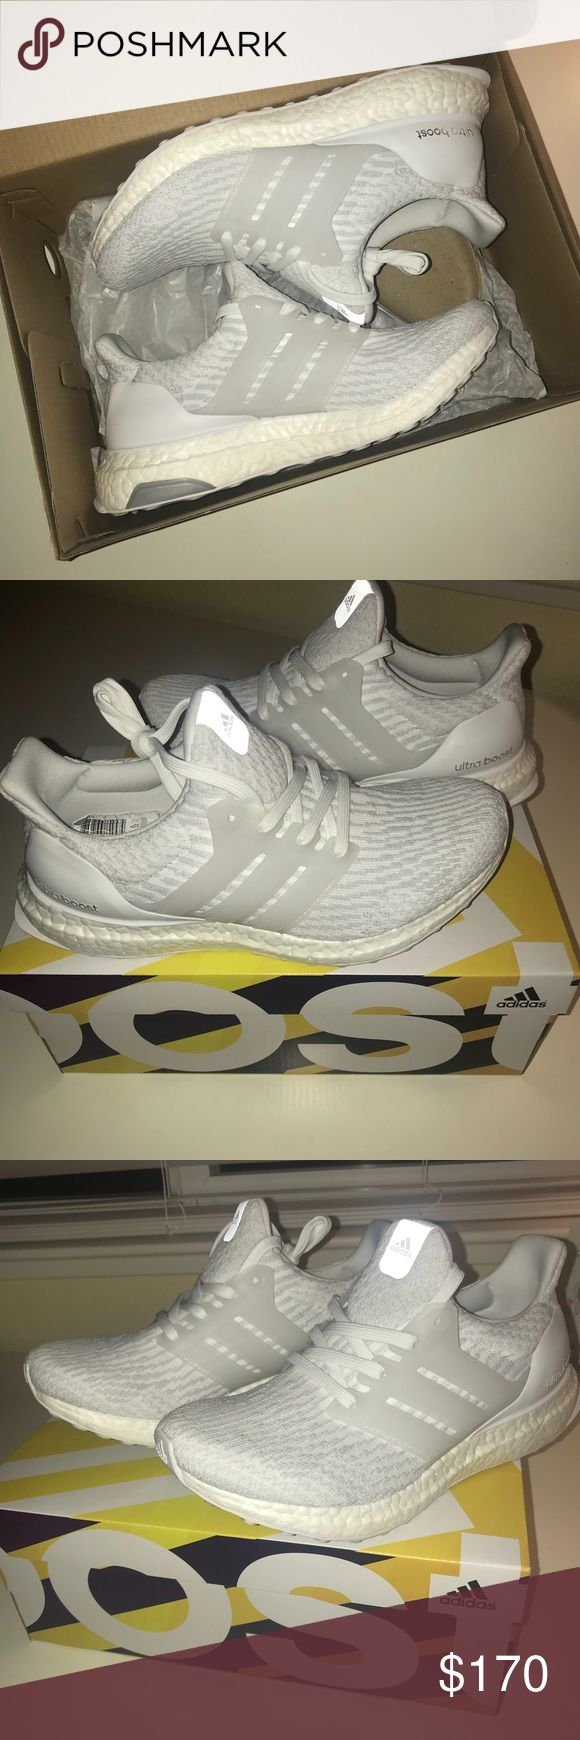 adidas ultra boost white 10 adidas stan smith velcro kids shoes